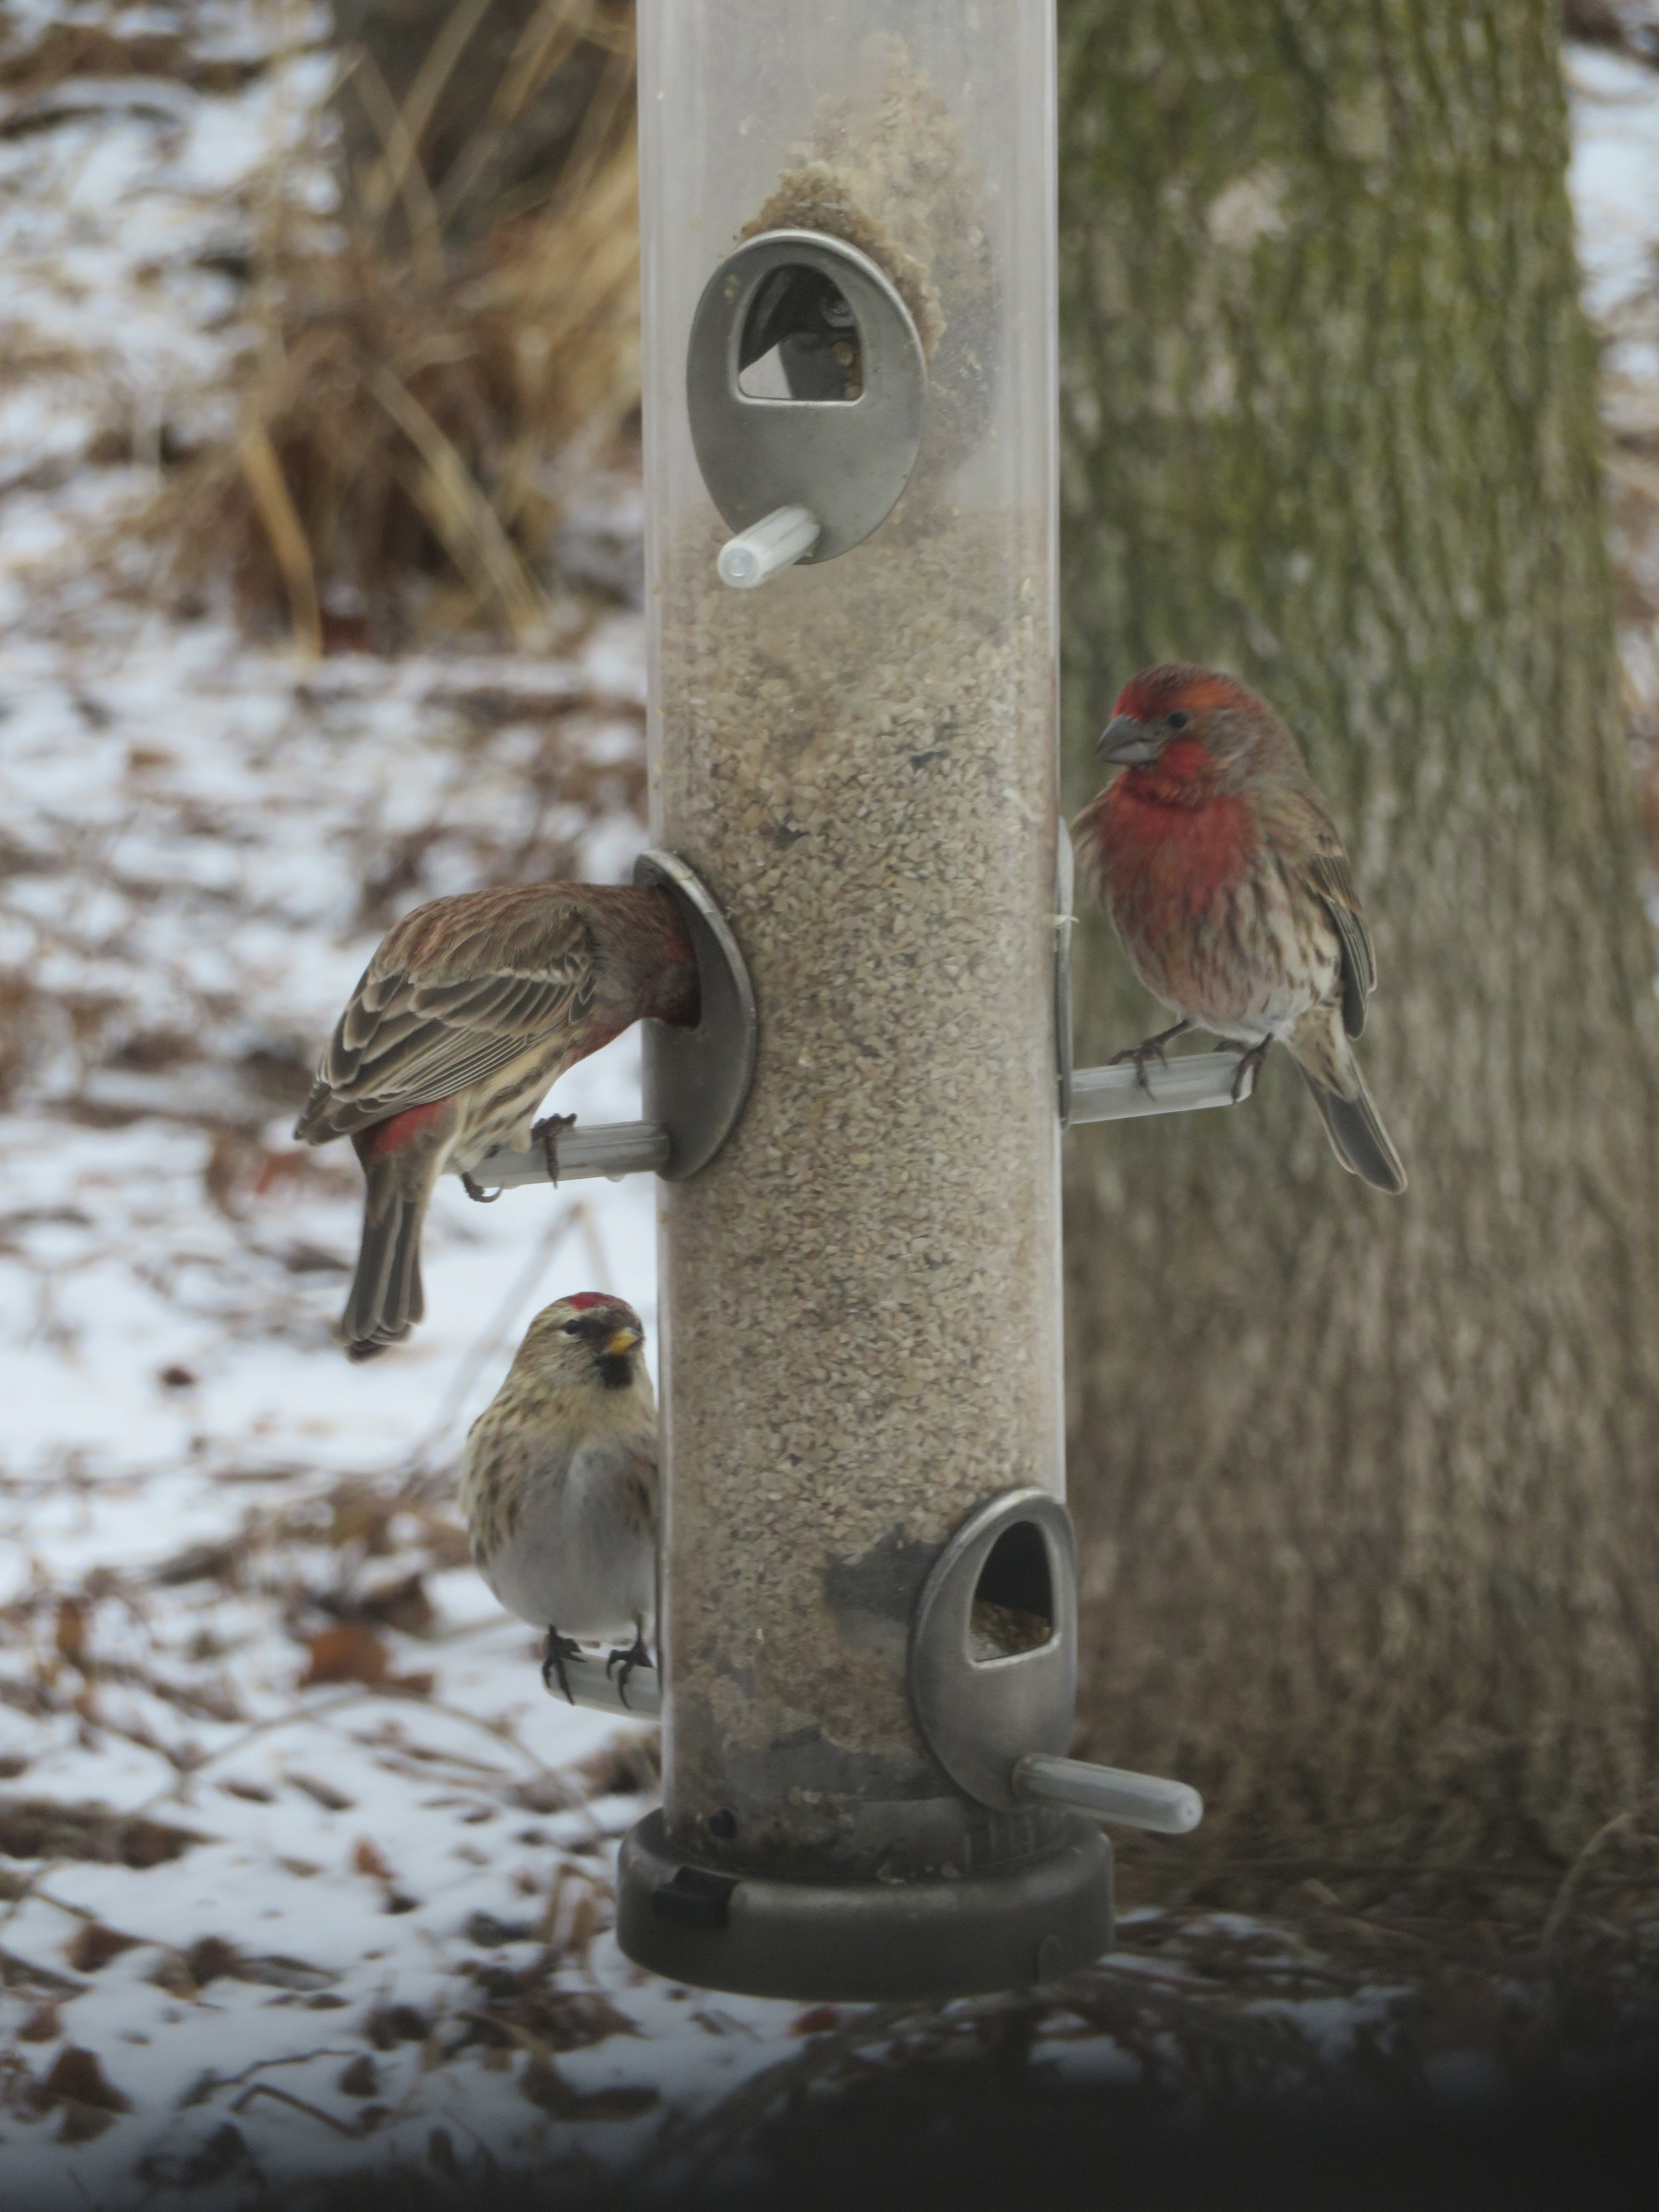 House finches (with the red faces and breasts) and common redpoll (with the red cap) feasting during the GBBC. Photo by Maddie Dumas